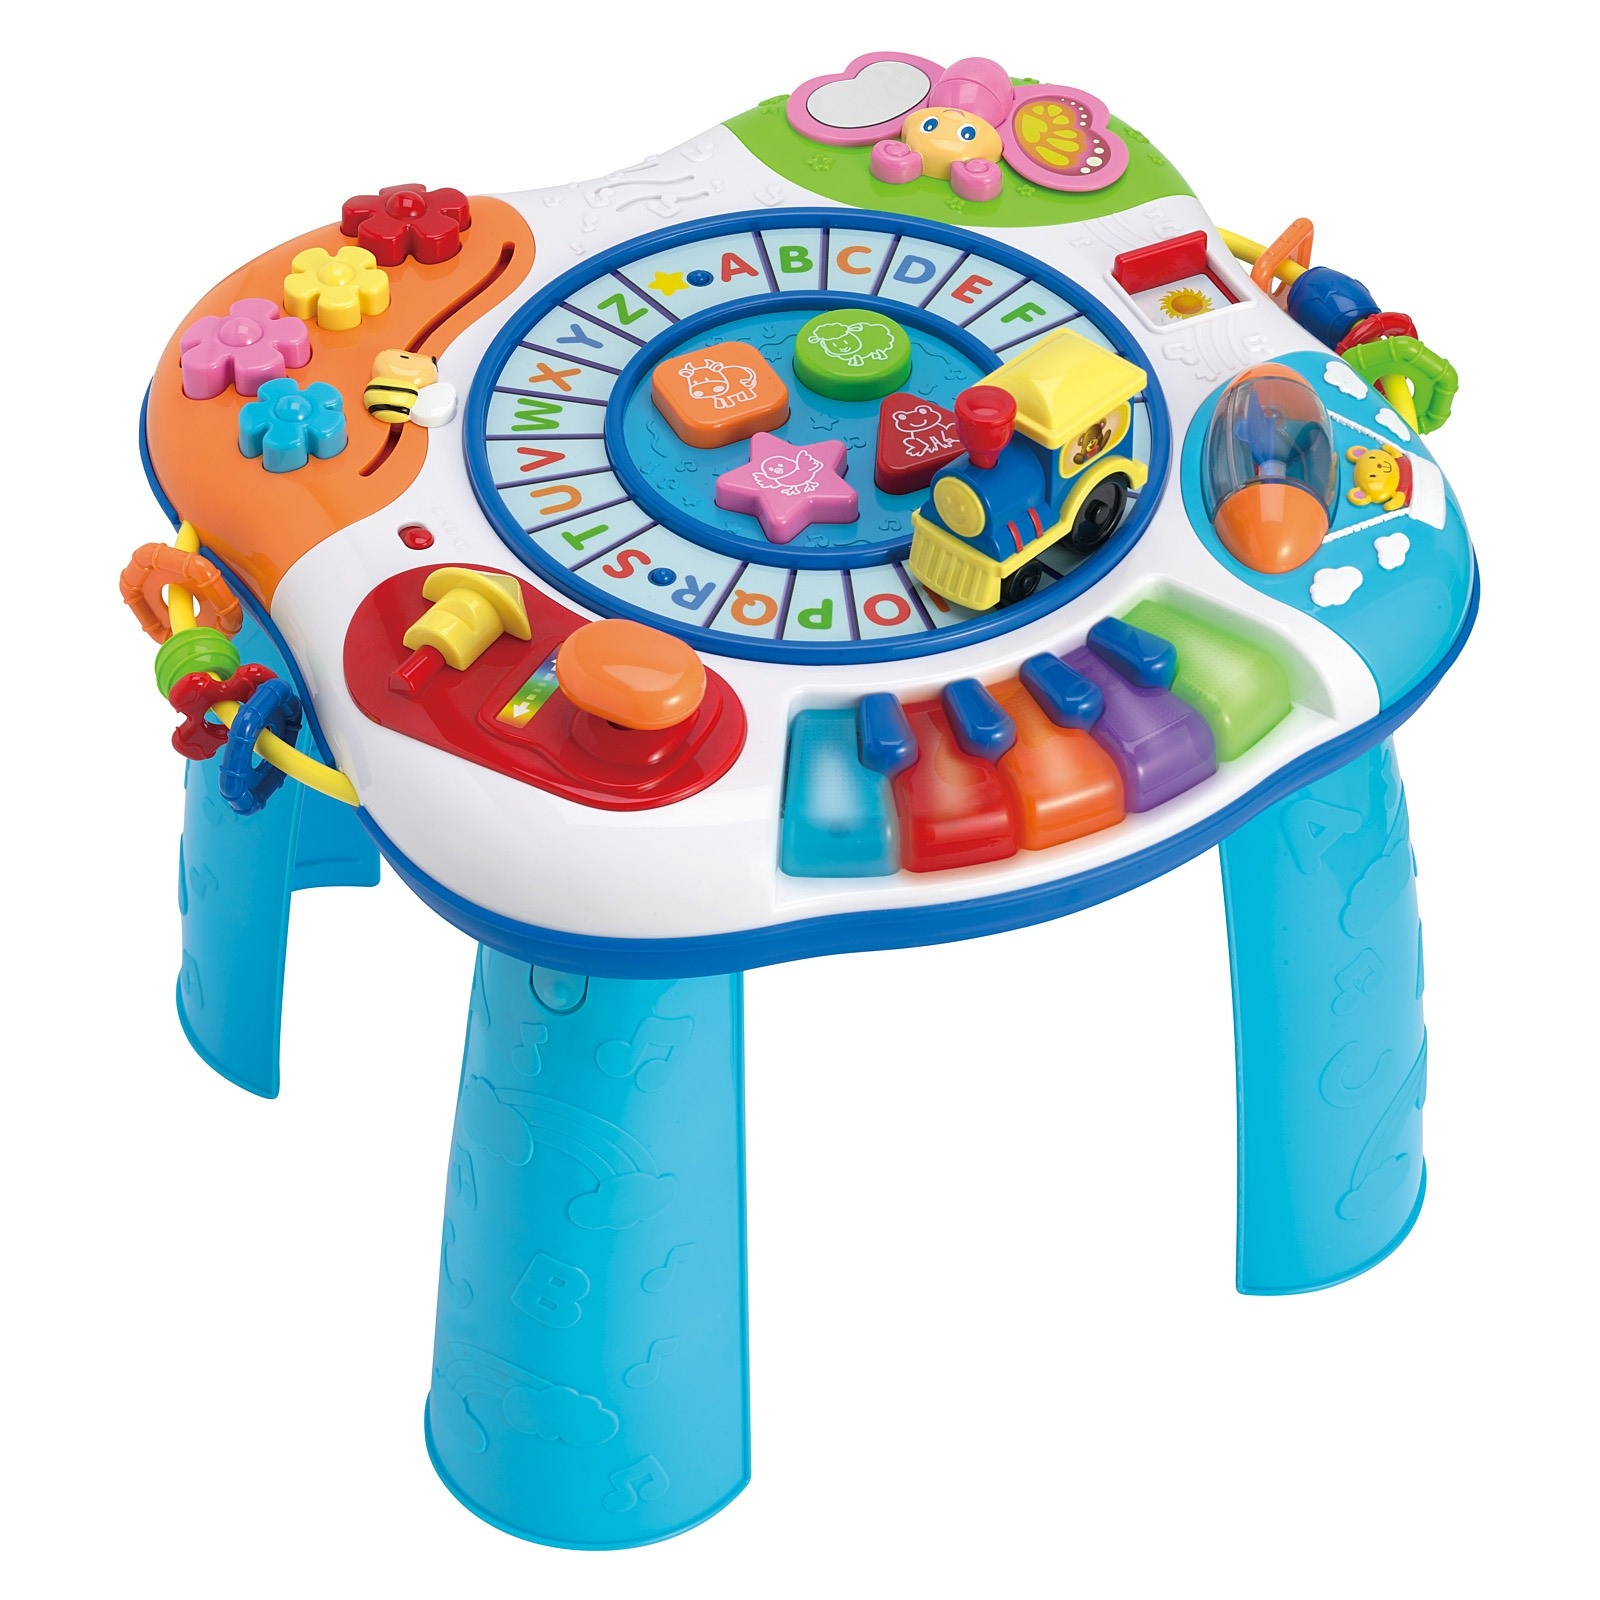 Ebebek Bondigo BL2702 Educational Activity Table - Turkish Speaking